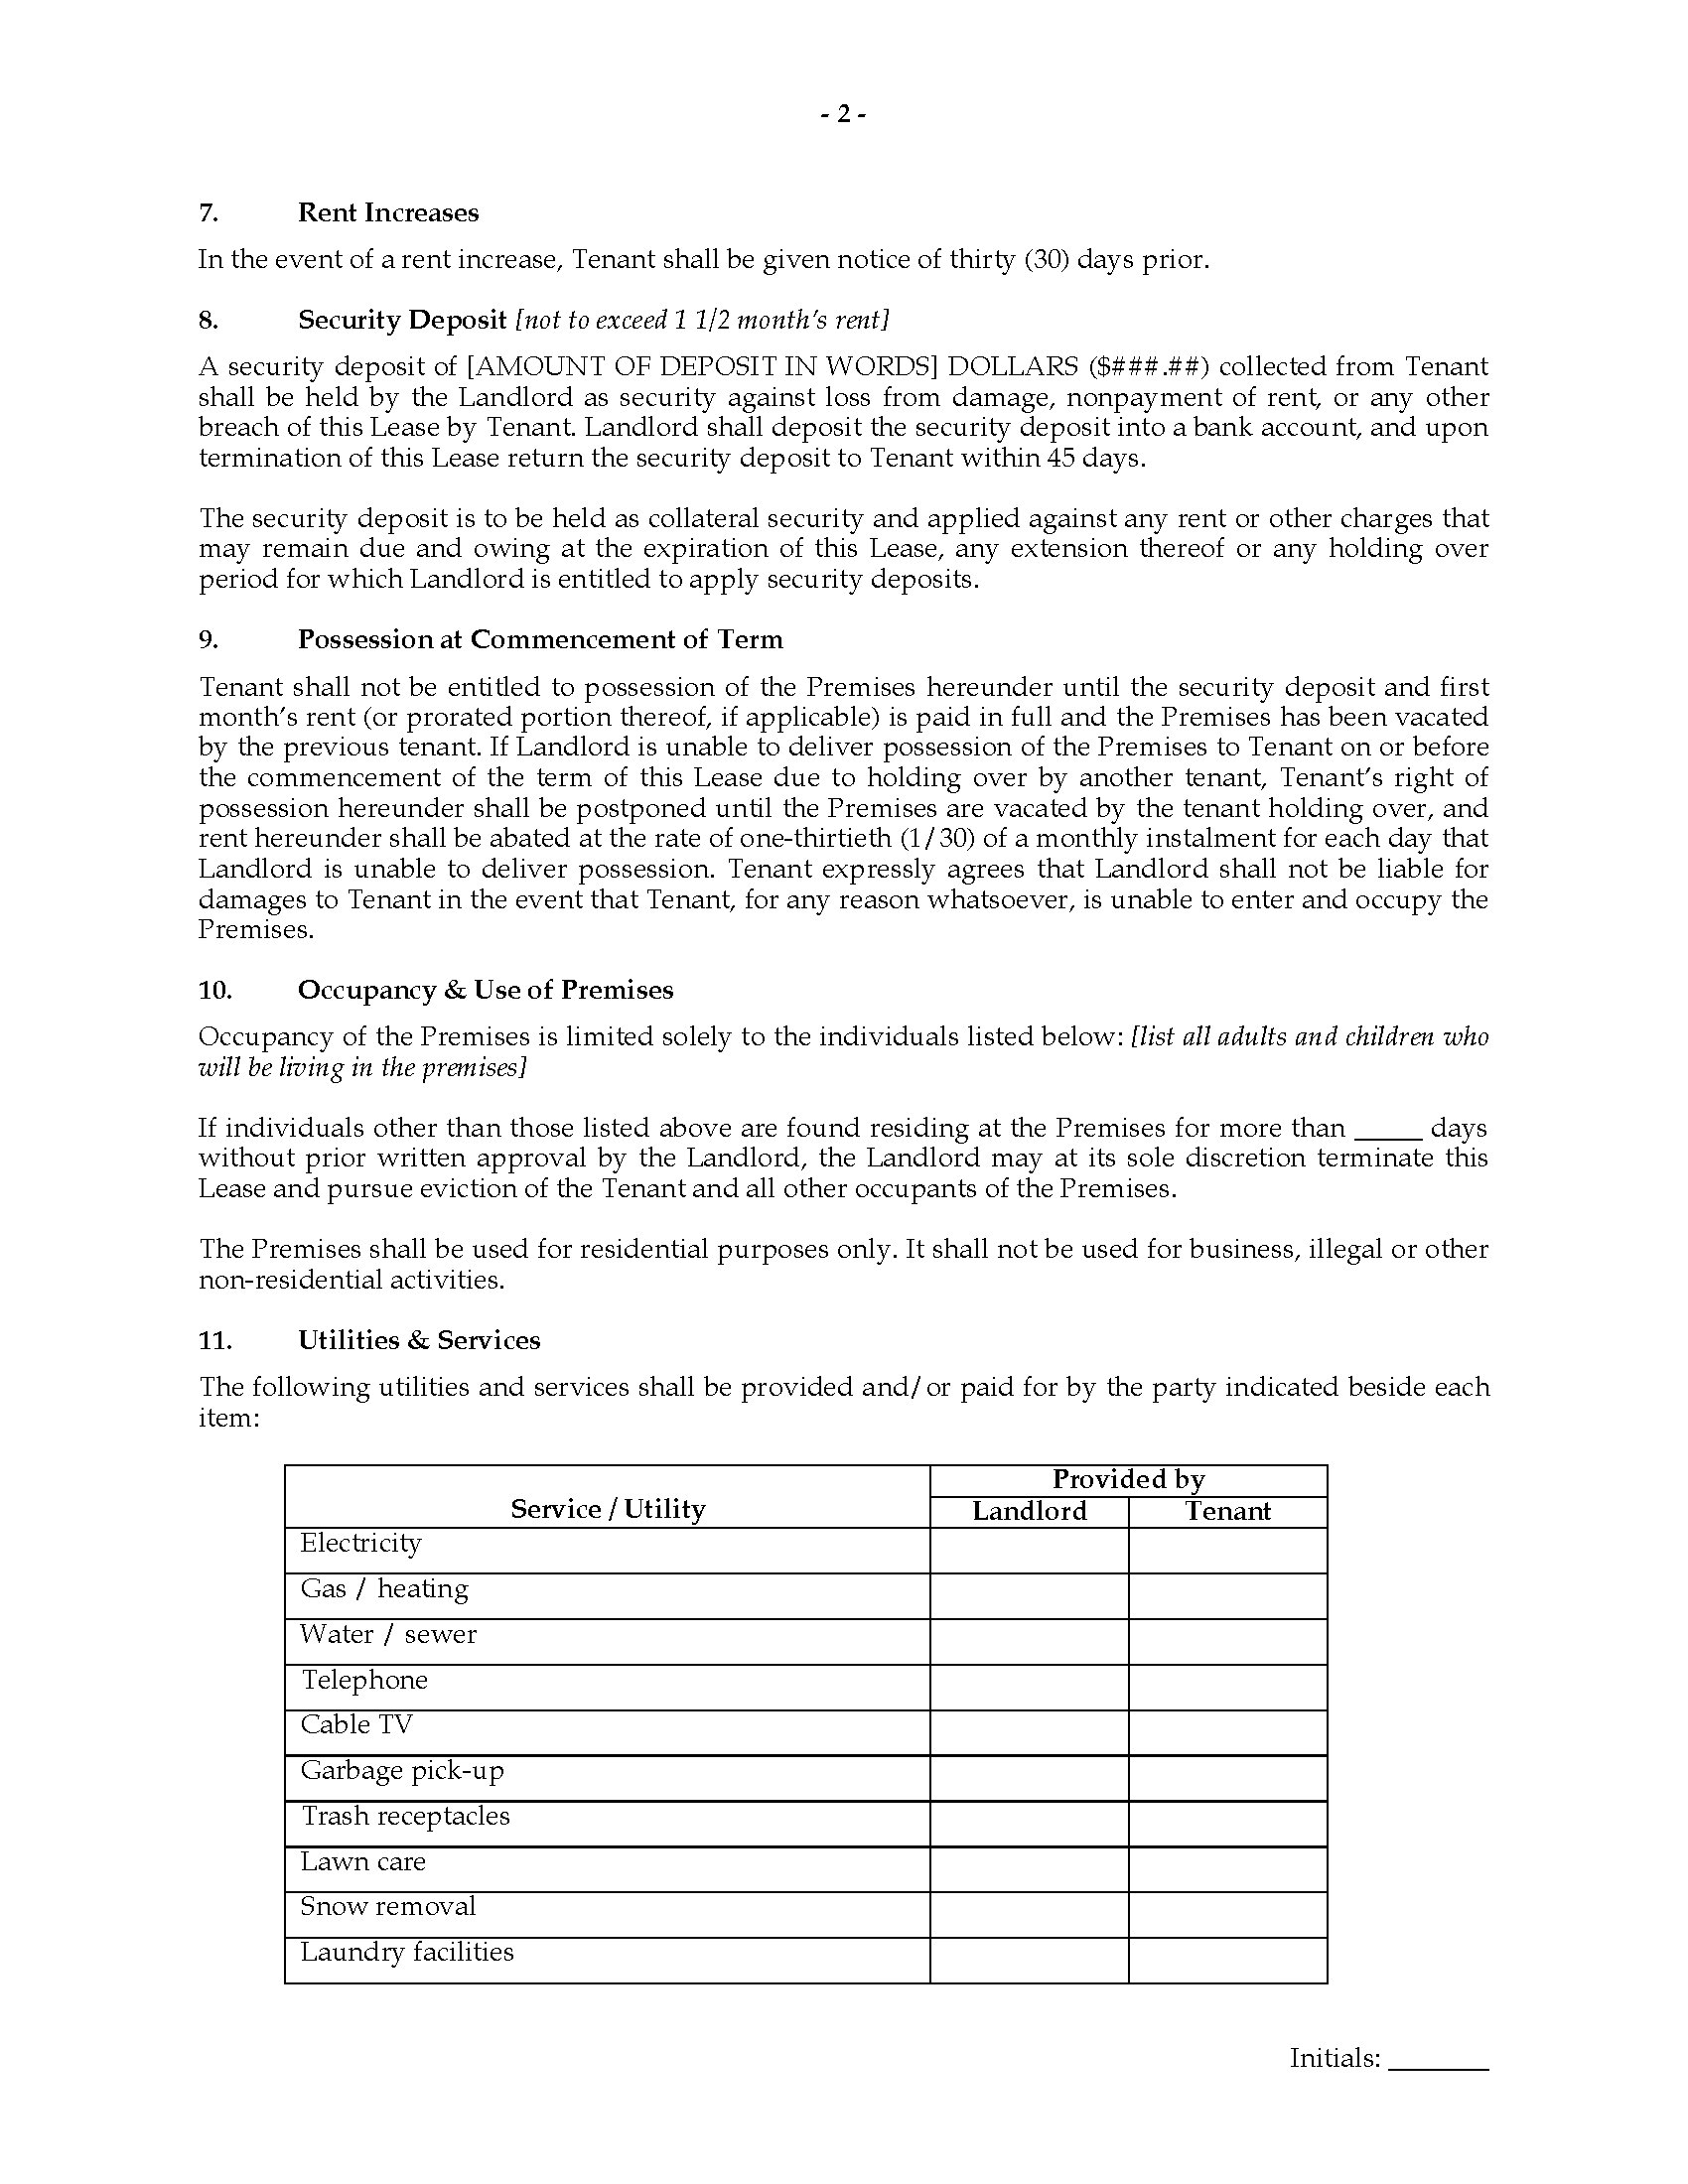 Indiana Fixed Term Residential Lease Agreement